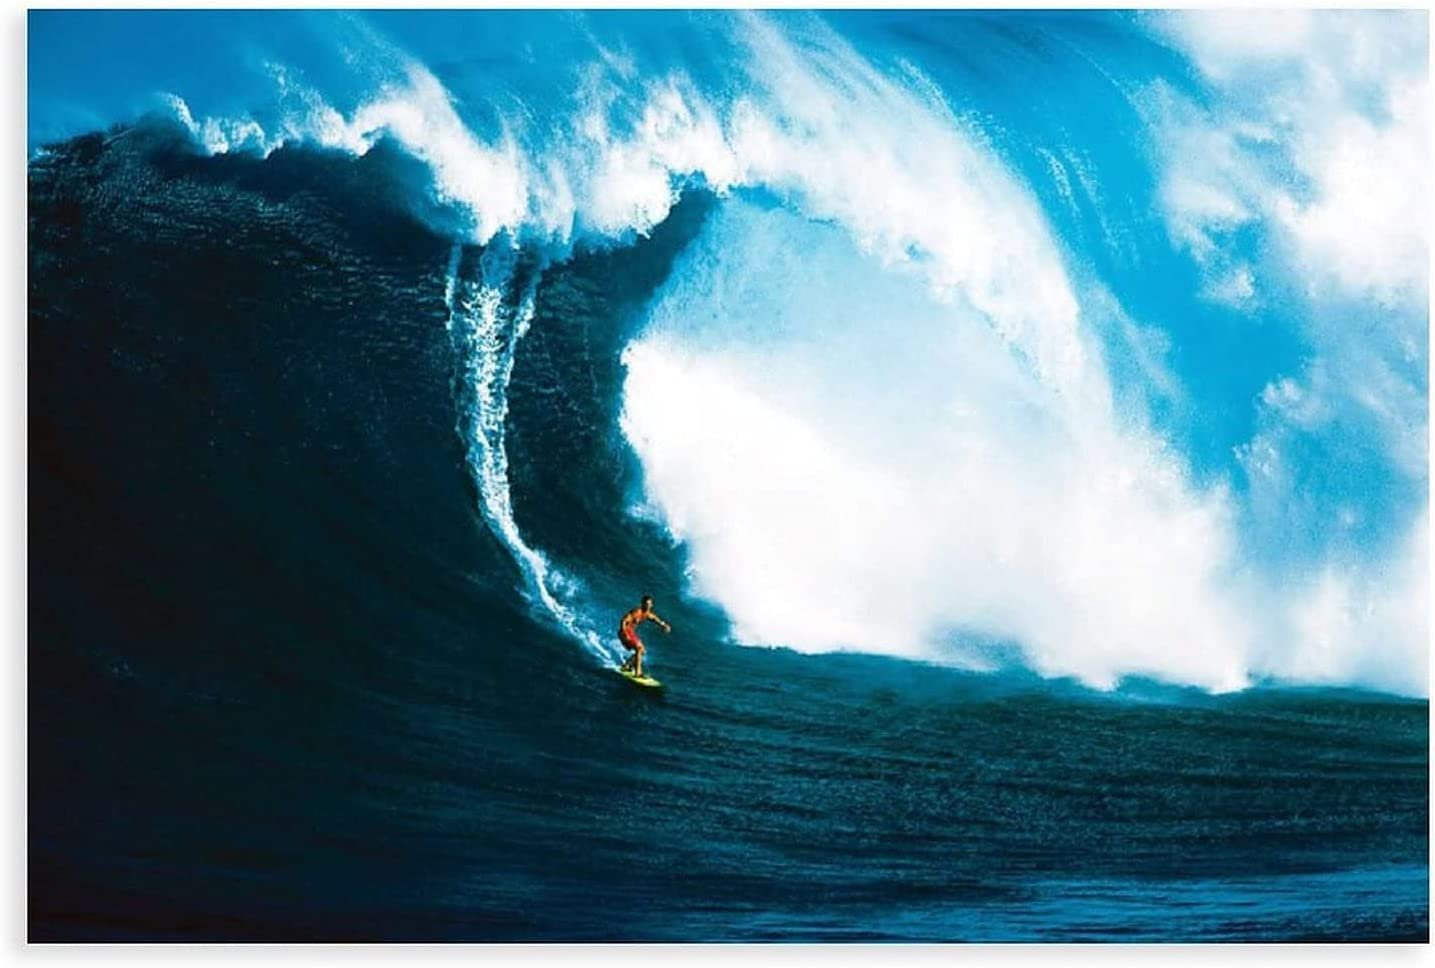 Super intense SALE Surfing Posters Let's Fees free!! Go Extrem Waves The Poster